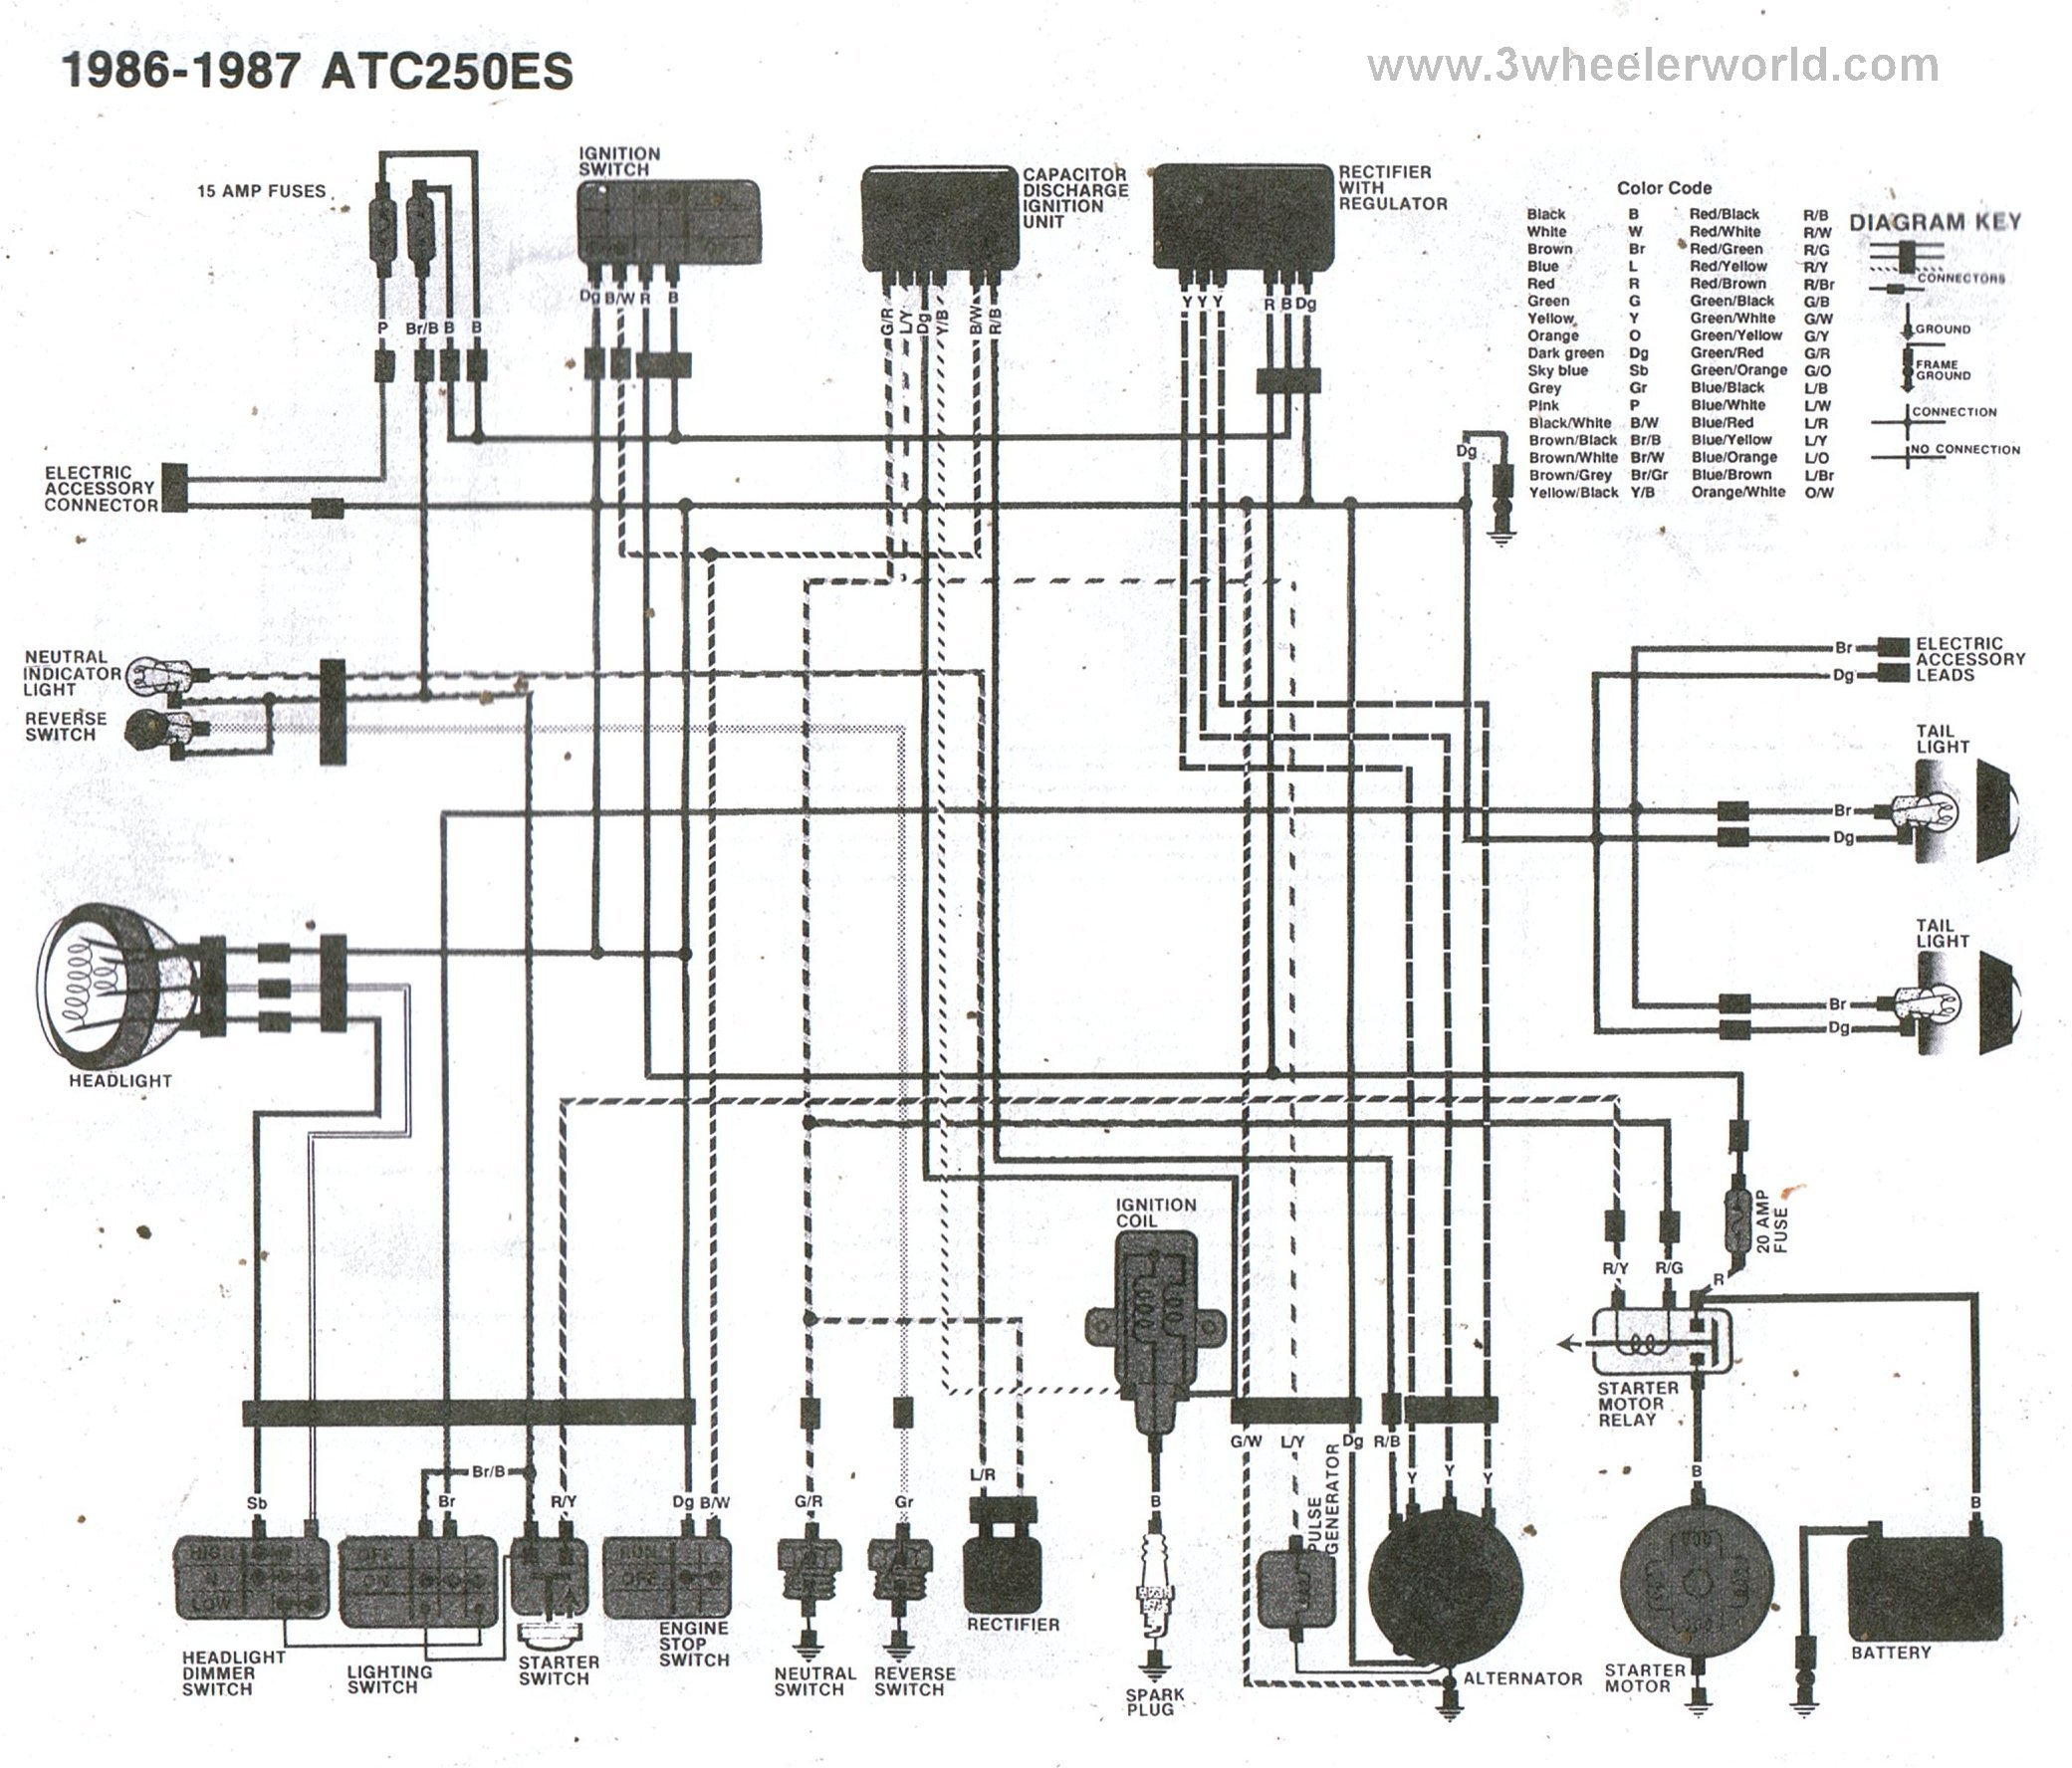 ATC250ESx86Thru87 honda outboard wiring diagram mercruiser wiring diagram \u2022 free honda trx200 wiring diagram at eliteediting.co